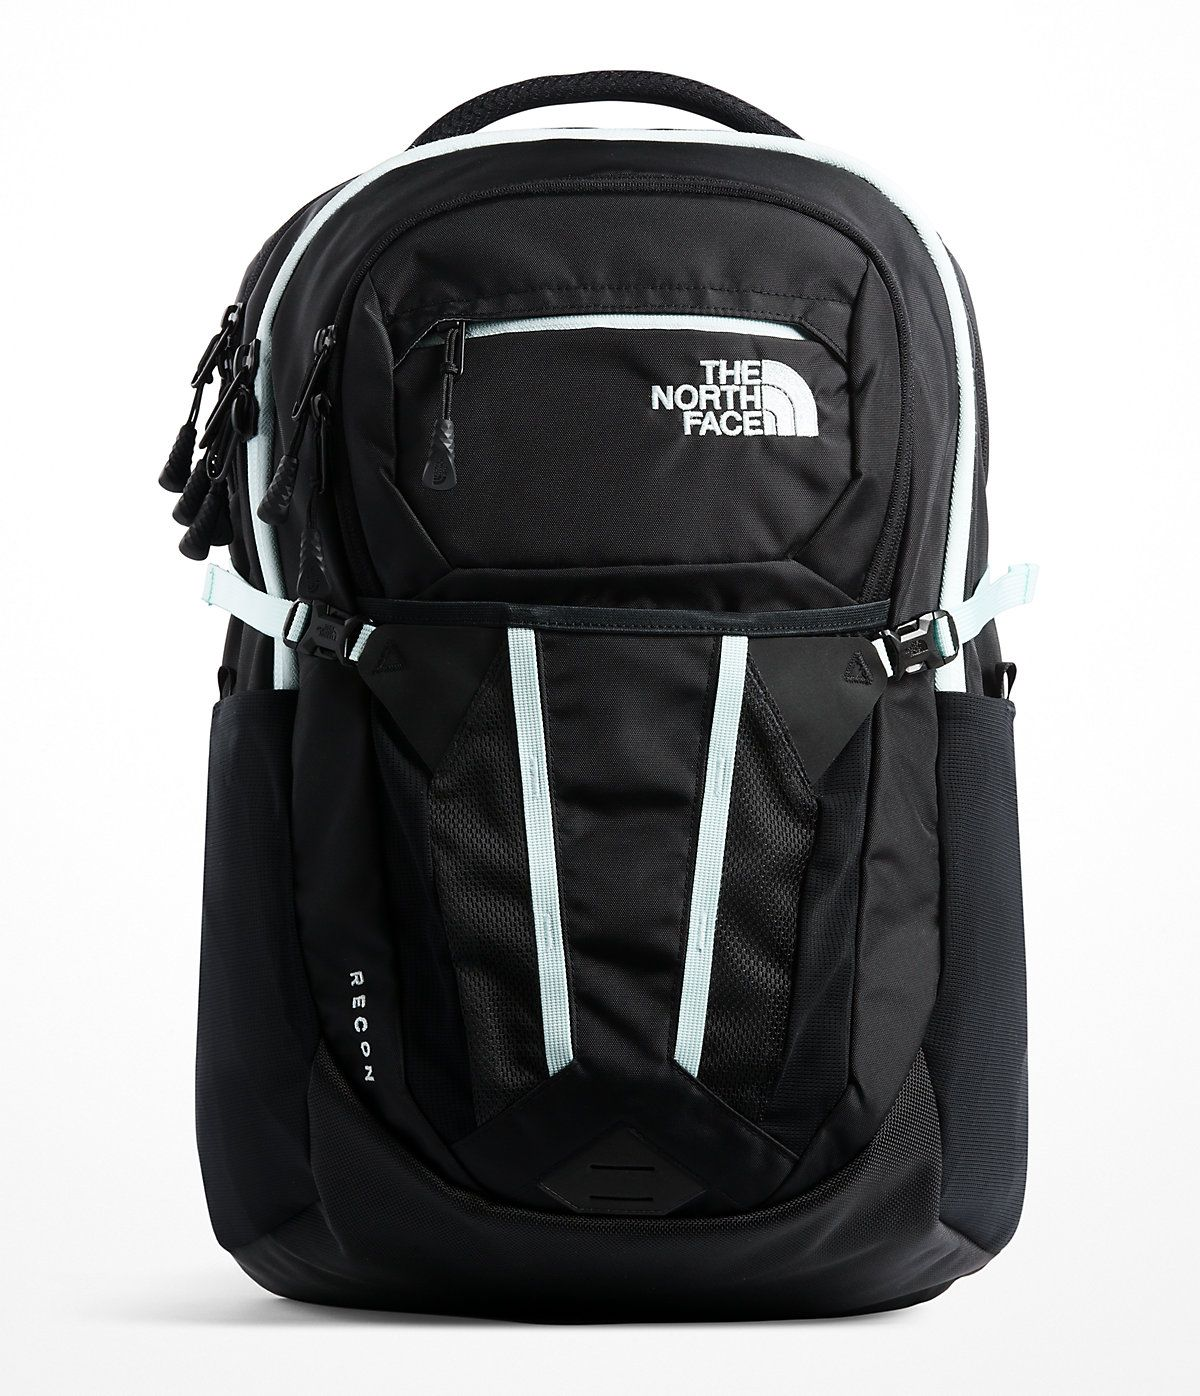 8dad8522a The North Face Women's Recon Backpack (30 Liter) in 2019 | Products ...